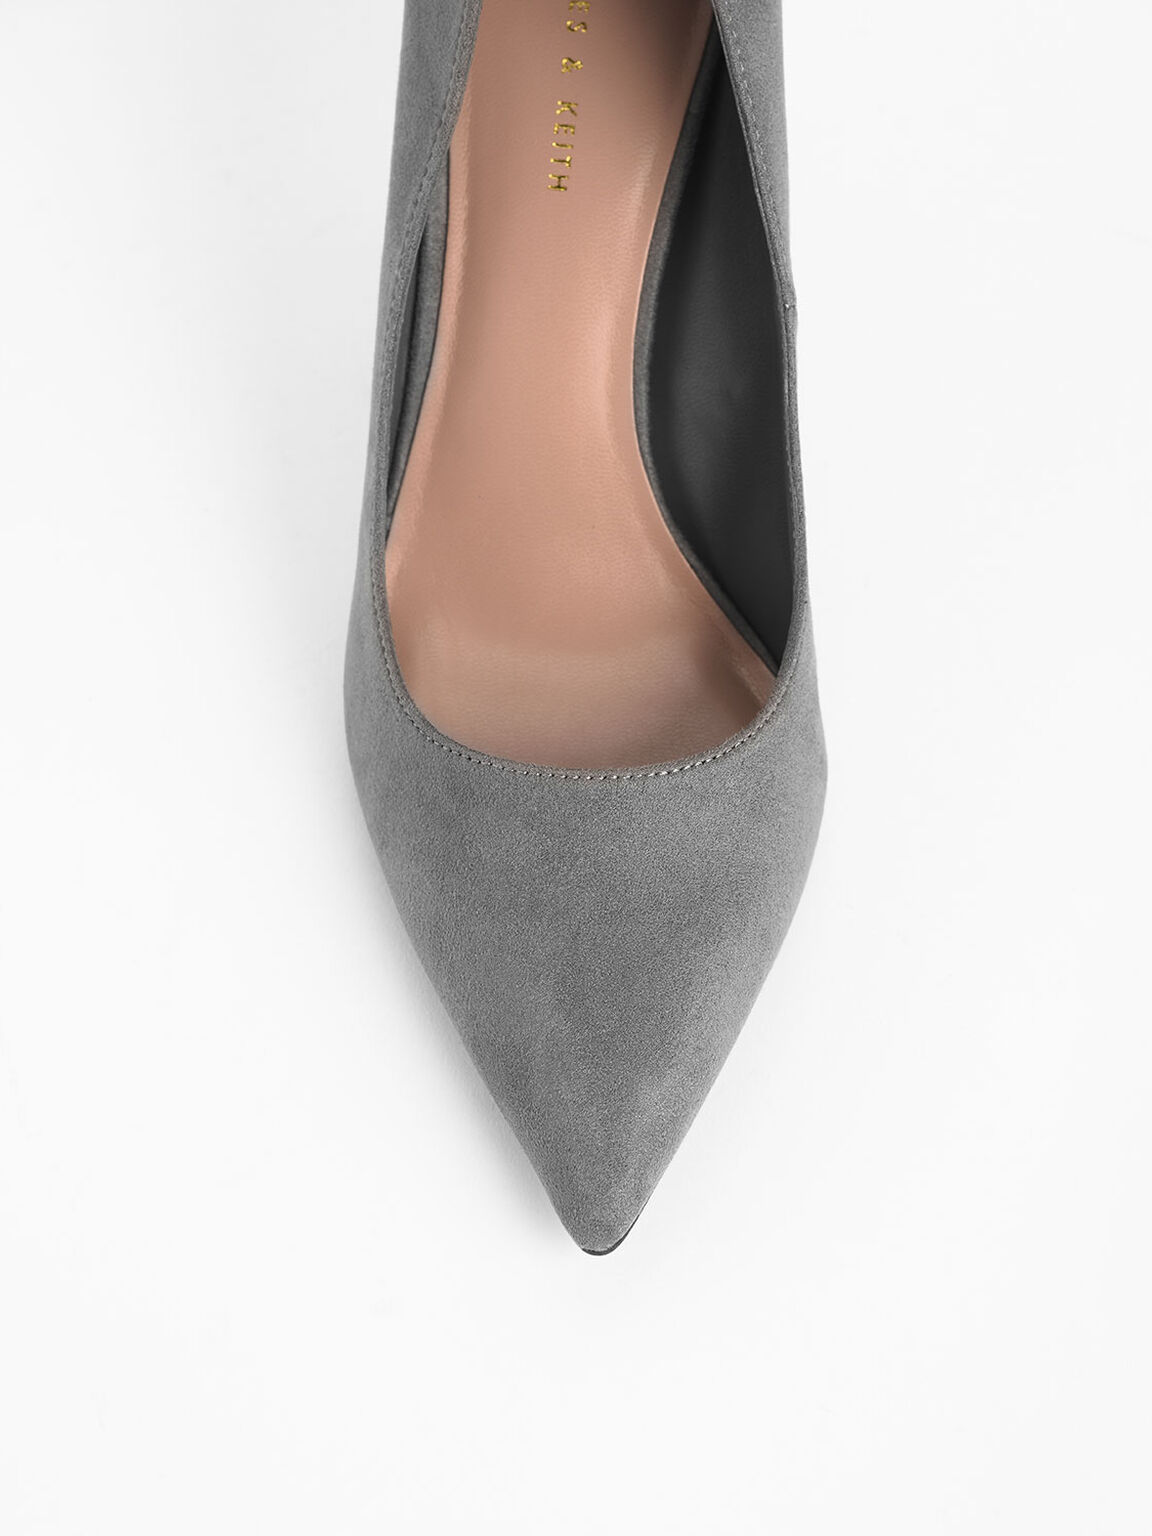 Classic Textured Pointed Toe Pumps, Grey, hi-res